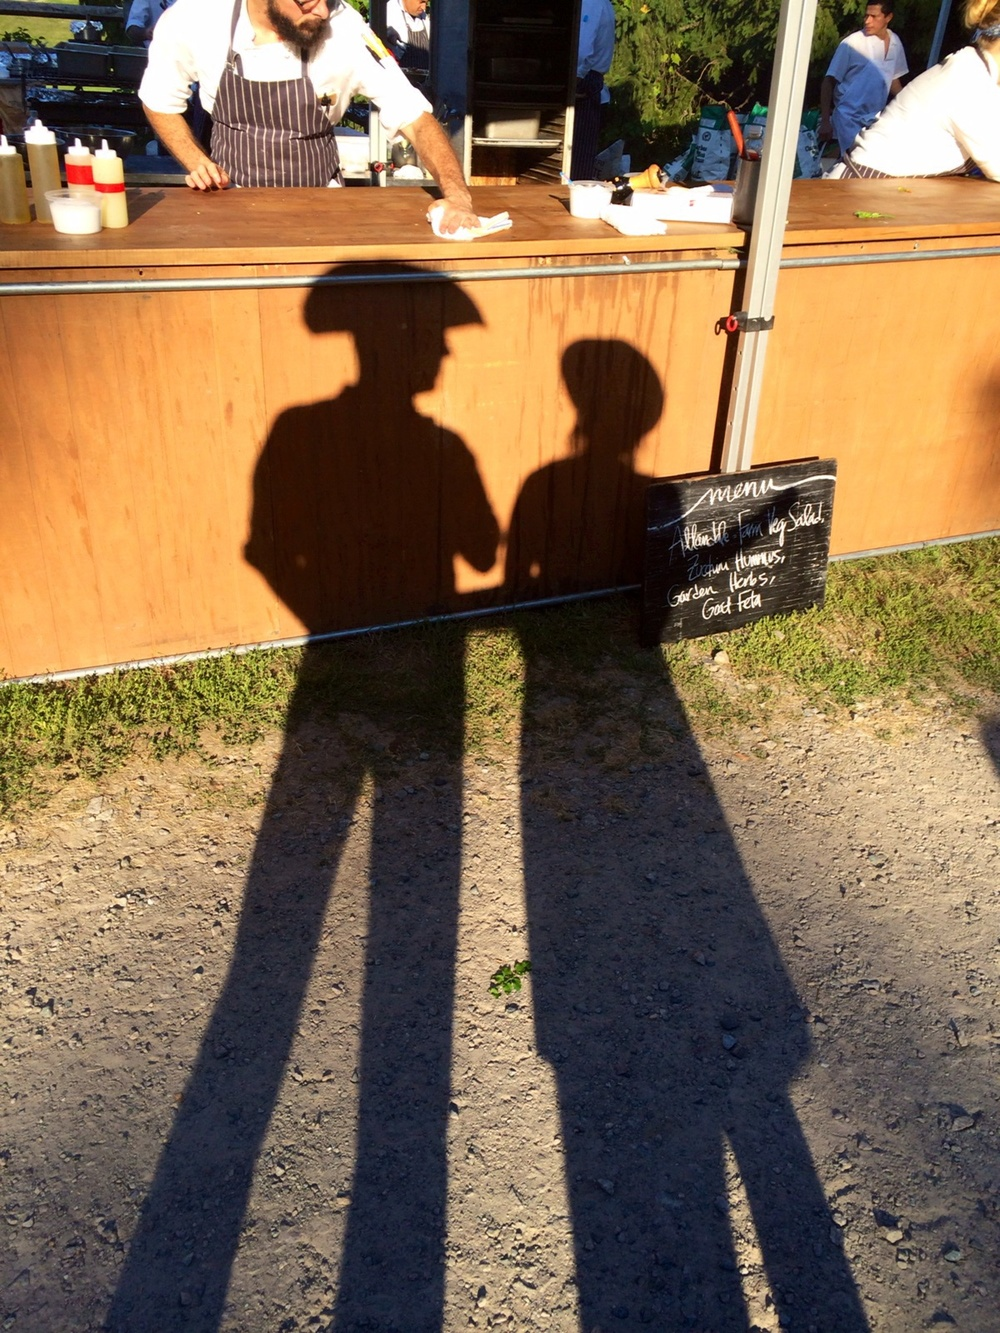 Shadow puppets-Boston, Massachusetts